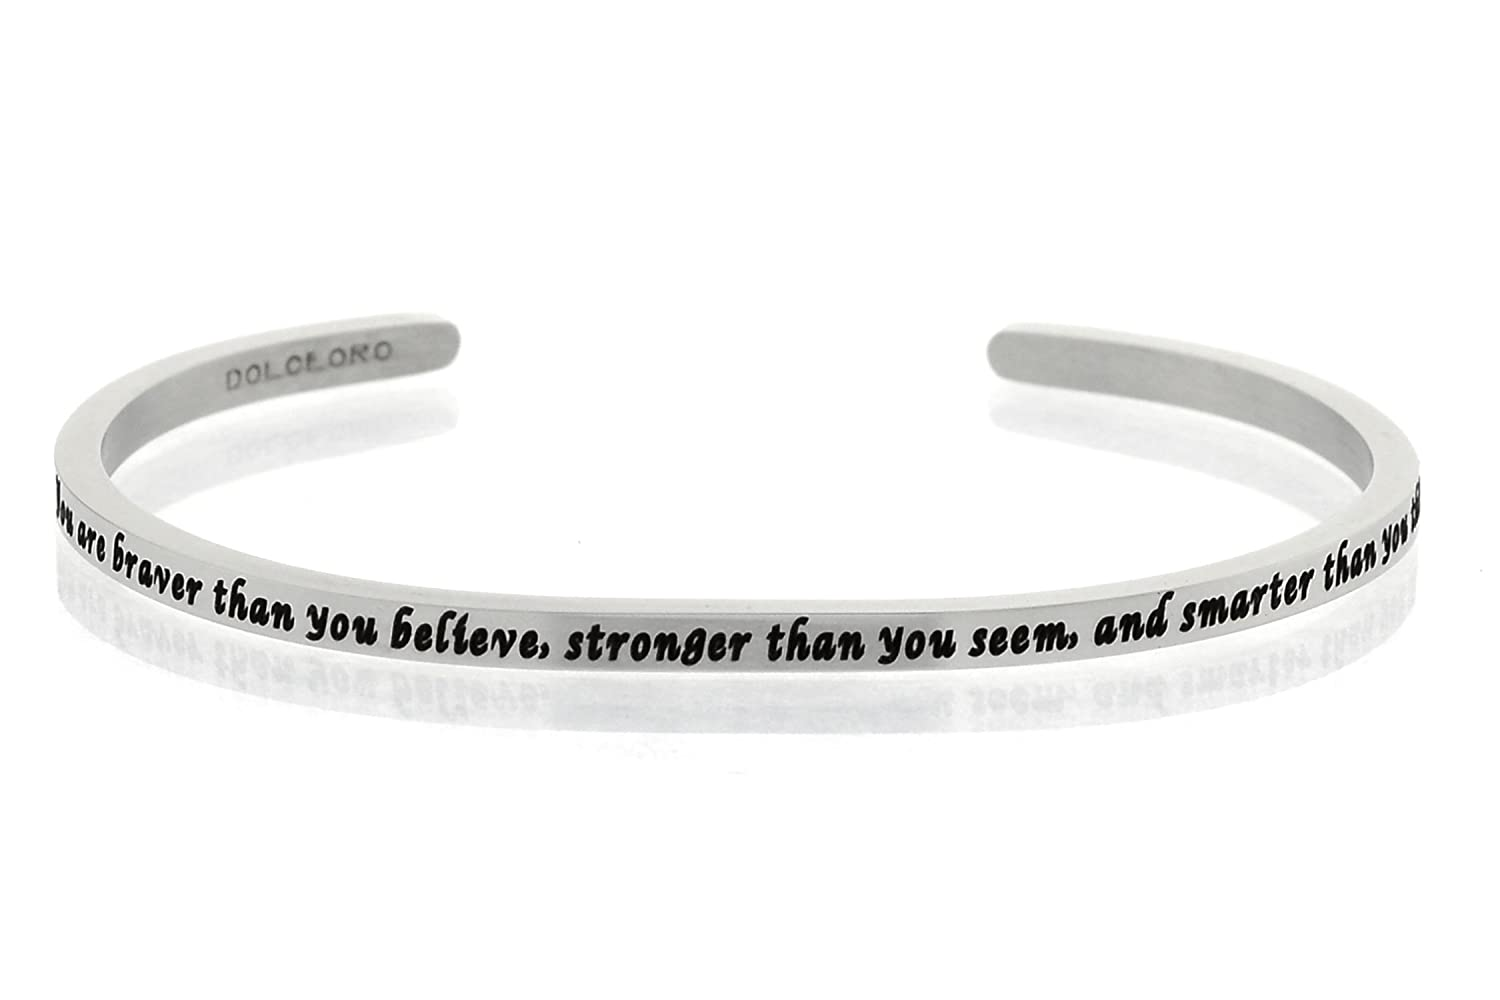 Dolceoro Inspirational Cuff Band, Polished 316L Surgical Grade Stainless Steel - Choose an Inspirational Phrase Mantra Phrase:Nevertheless CUFF-NEVERTHELESS SHE PERSISTED